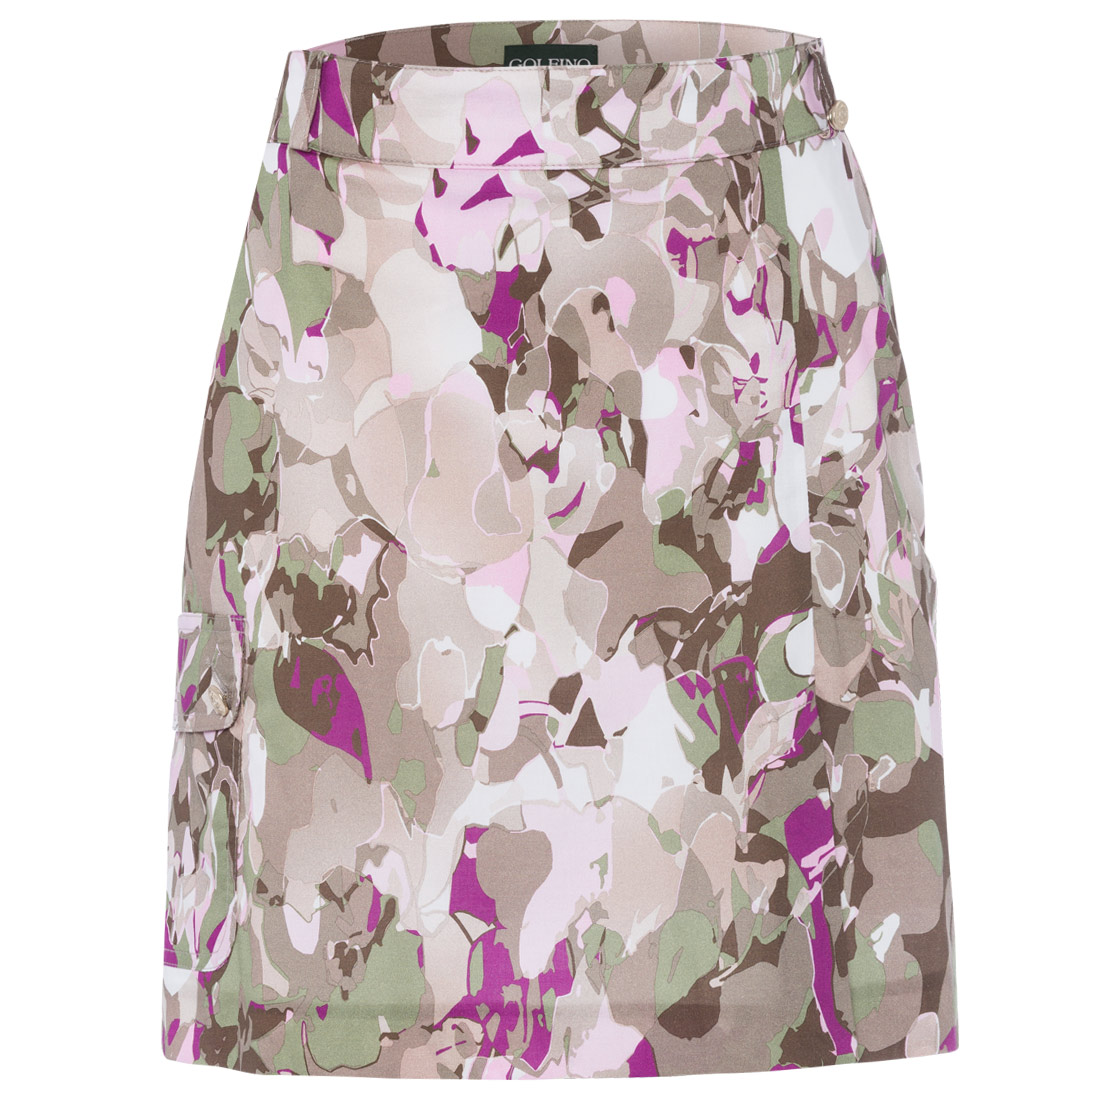 Ladies' skort with all-over print